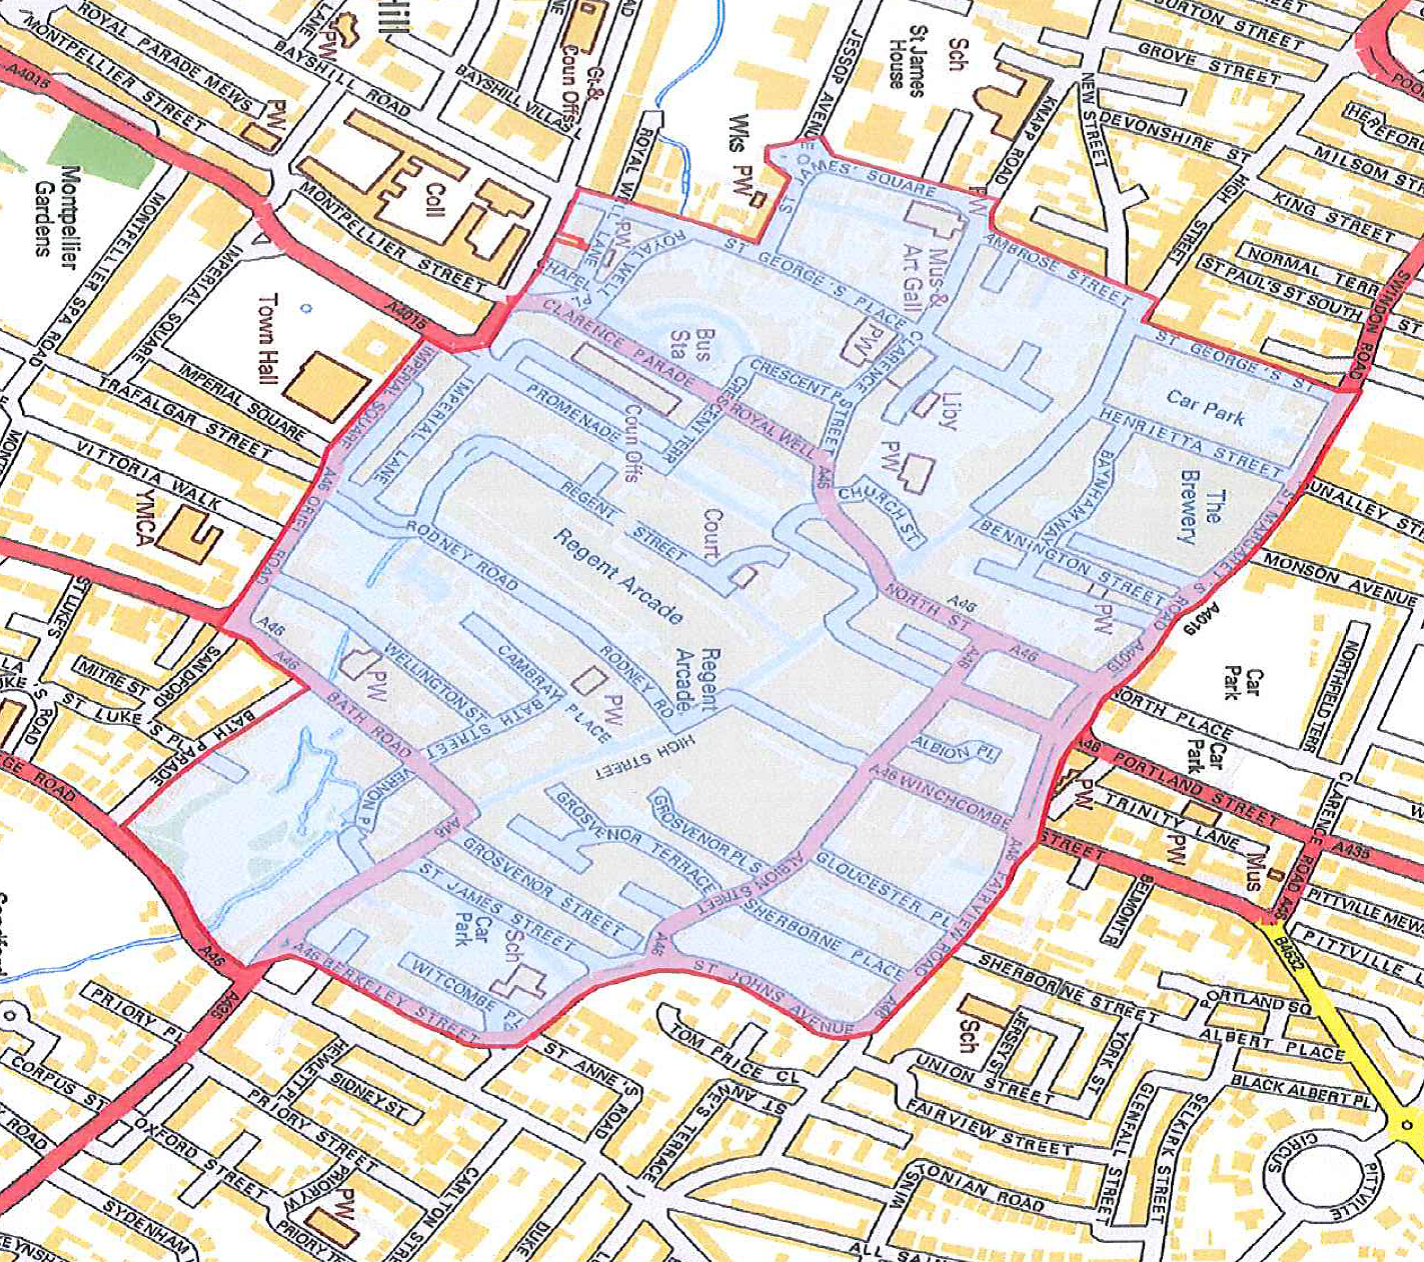 map of Cheltenham showing exclusion zone for A Dainton